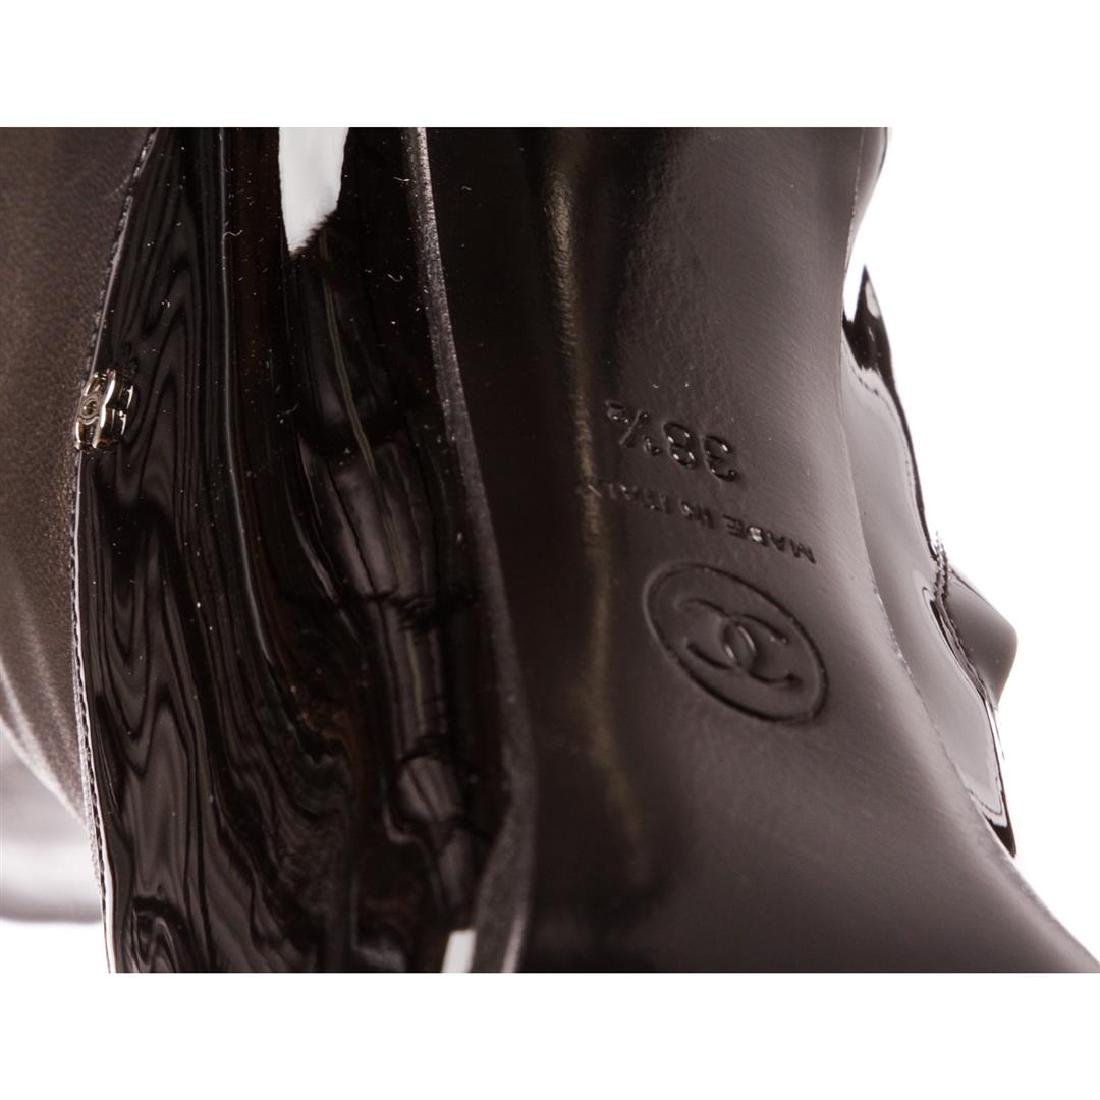 Chanel Black Leather Thigh-High Pearl Heel Boots Heels - 9